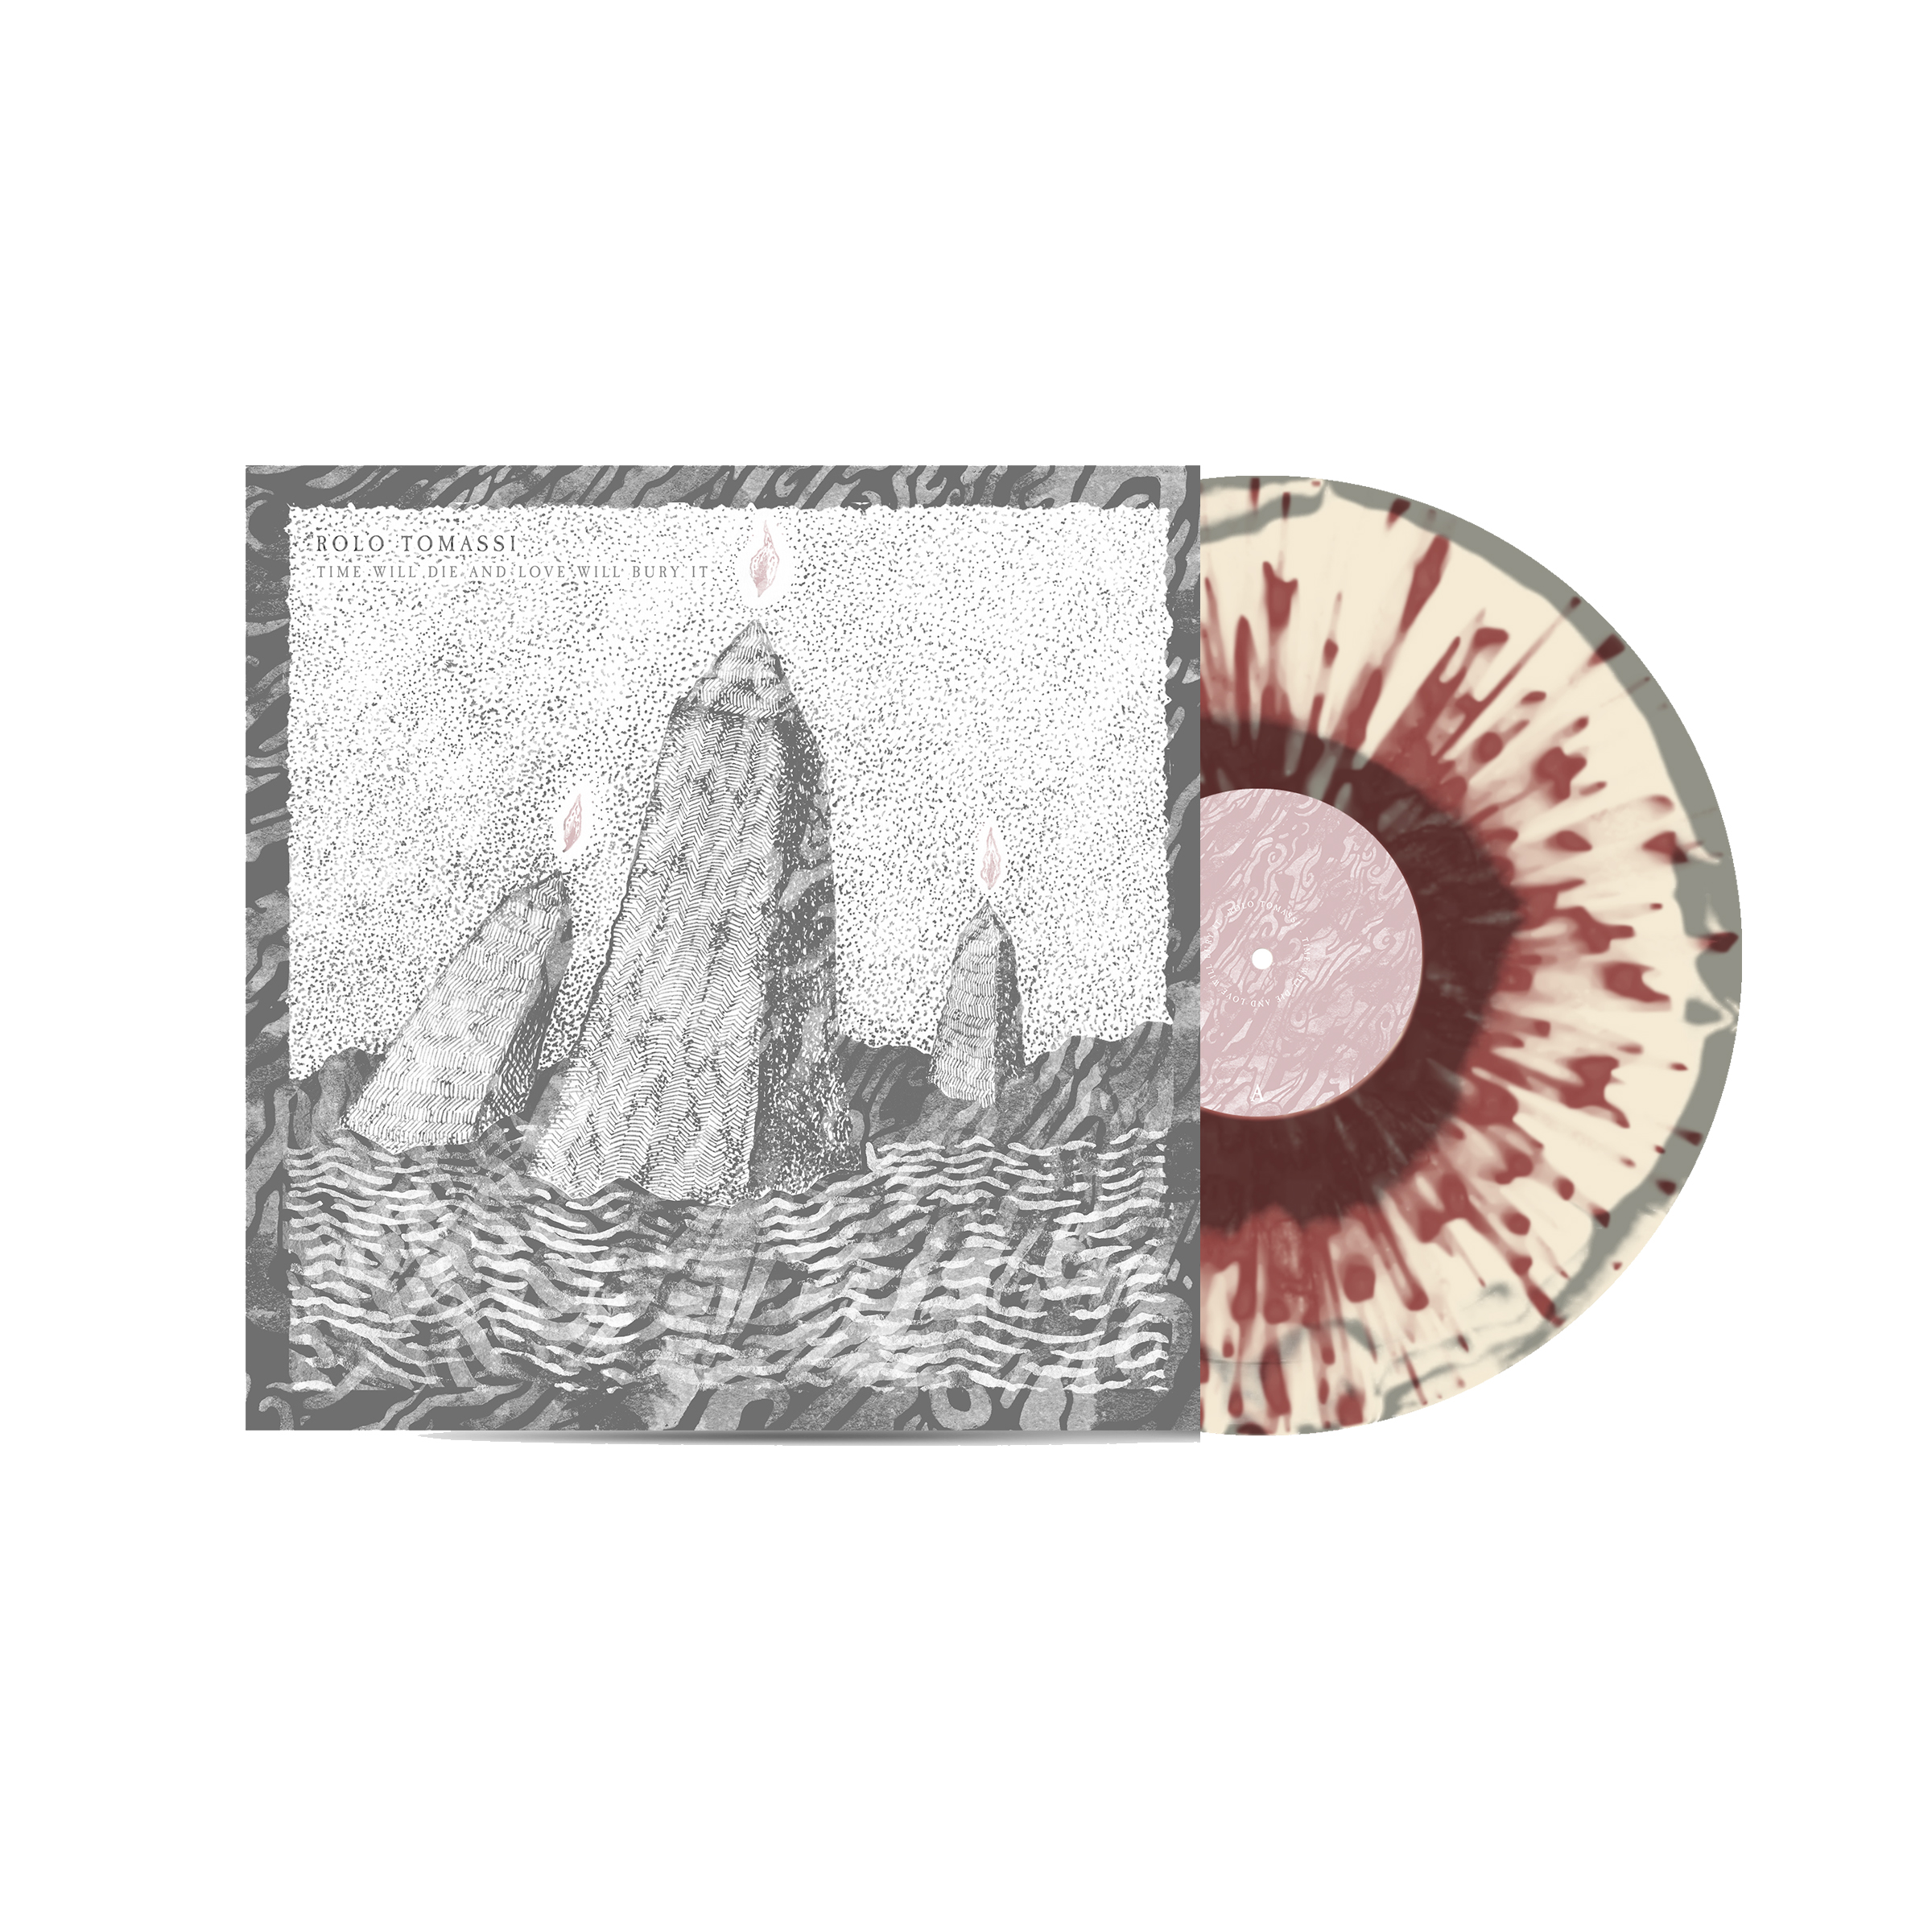 Rolo Tomassi - 'Time Will Die And Love Will Bury It'